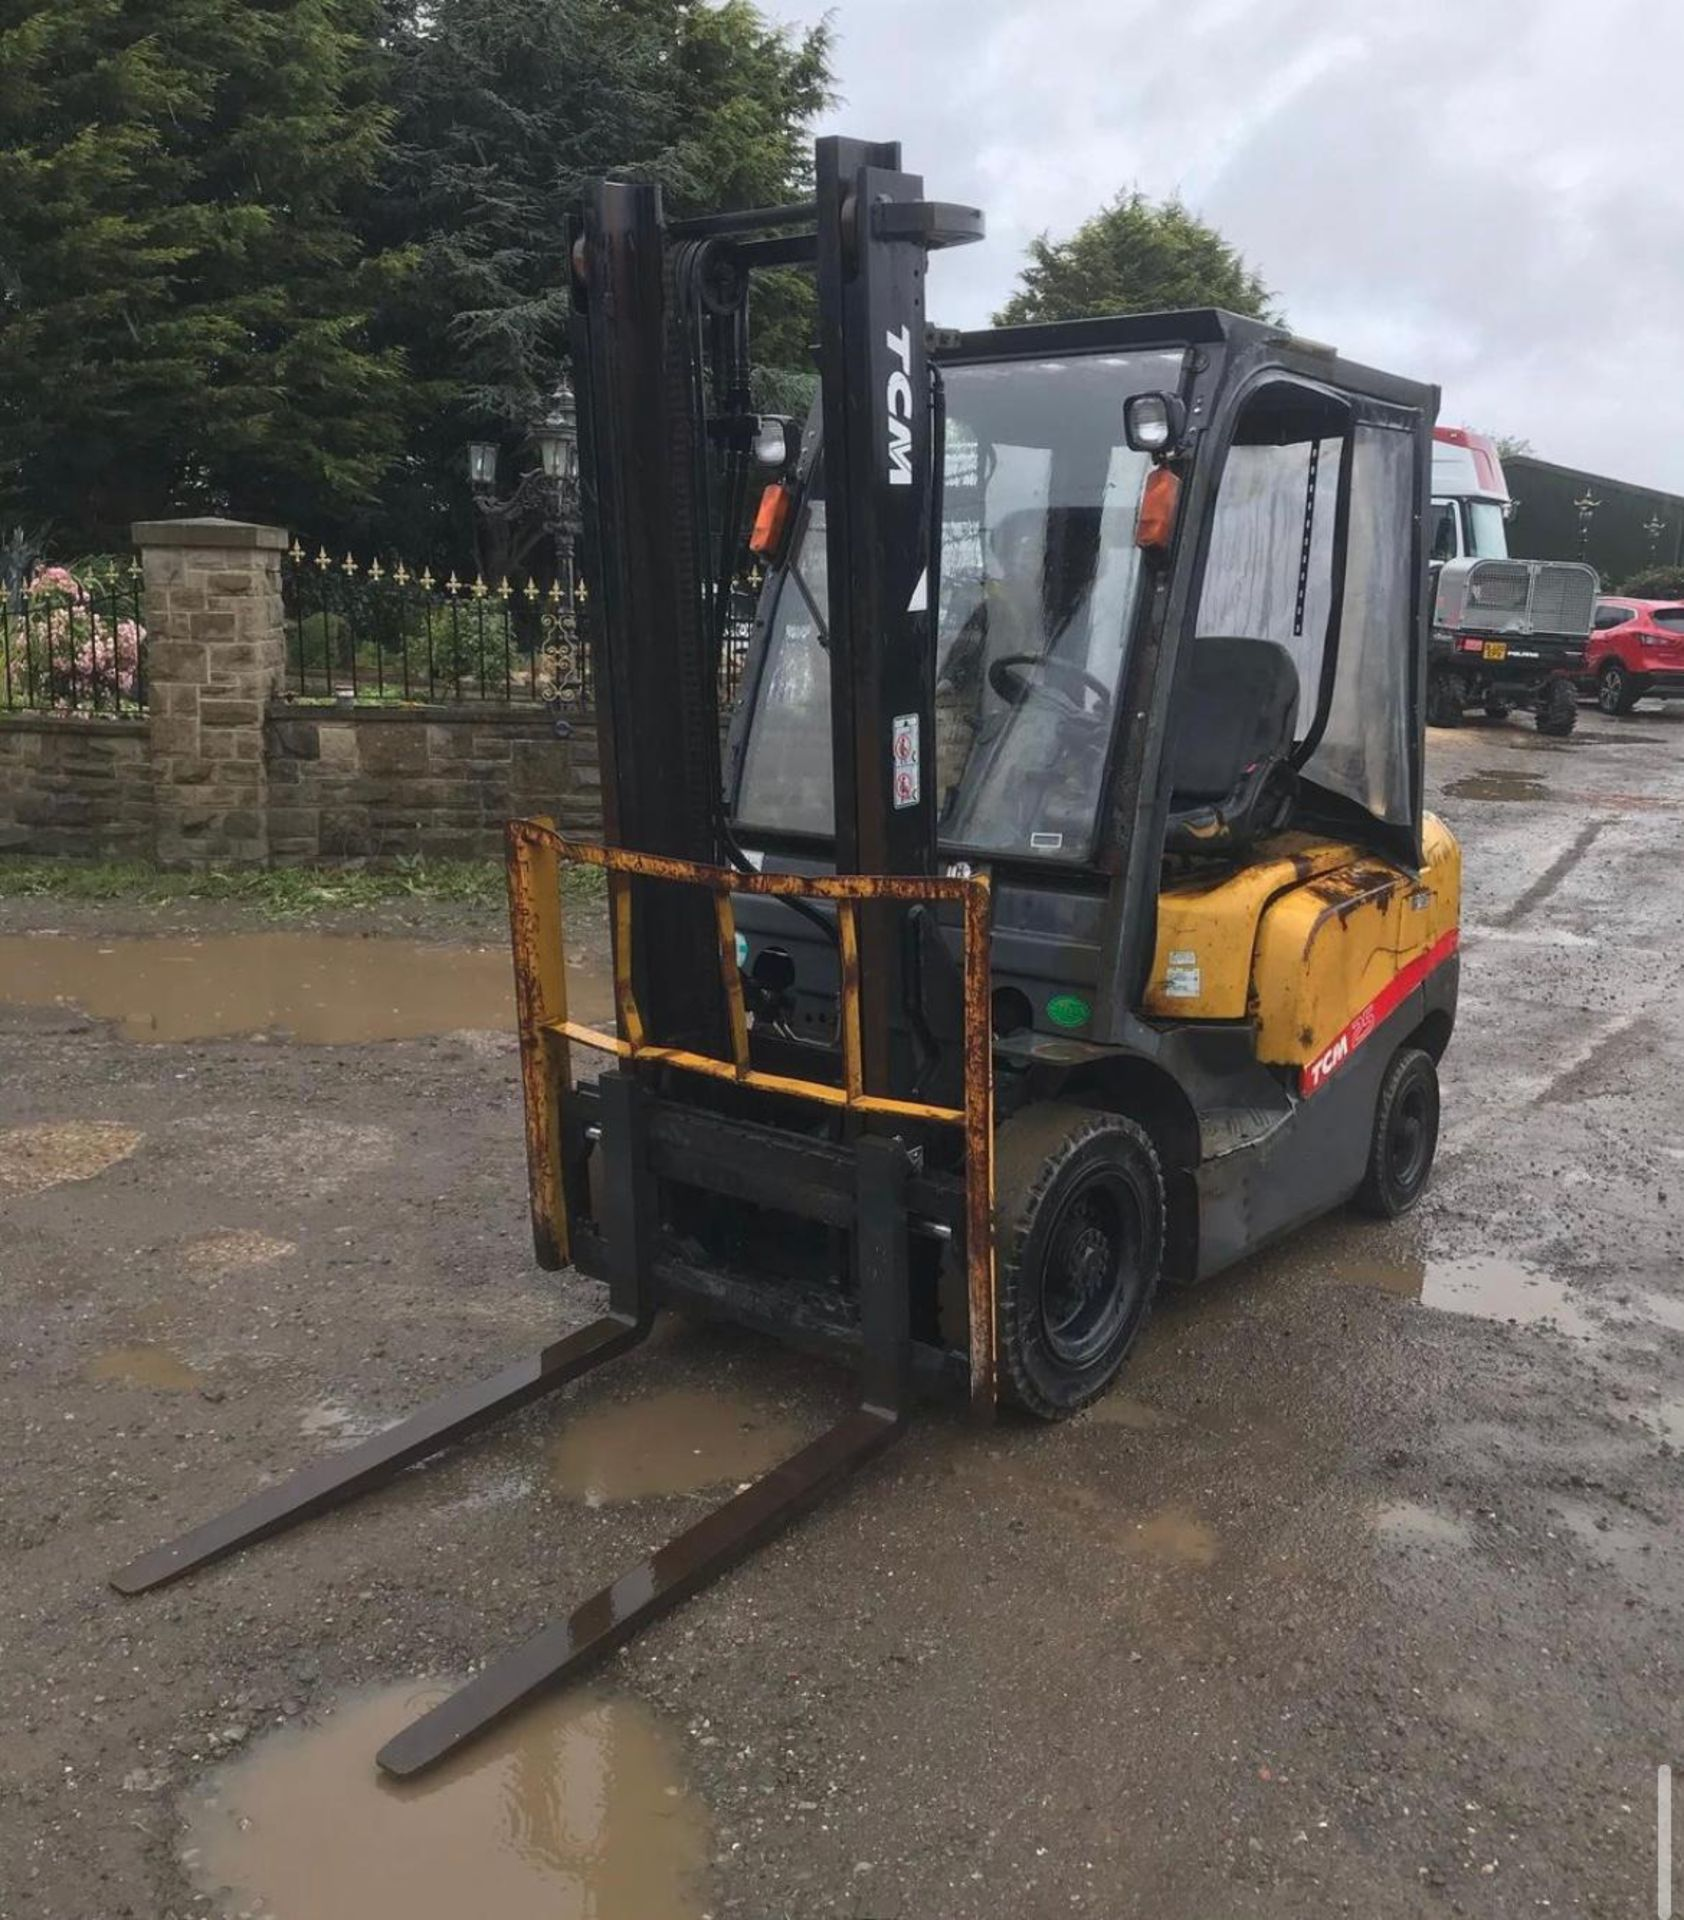 2007 TCM 25 FORKLIFT, RUNS, DRIVES AND LIFTS, 2.5 TON, SIDE SHIFT, LOW 7700 HOURS *PLUS VAT* - Image 3 of 5